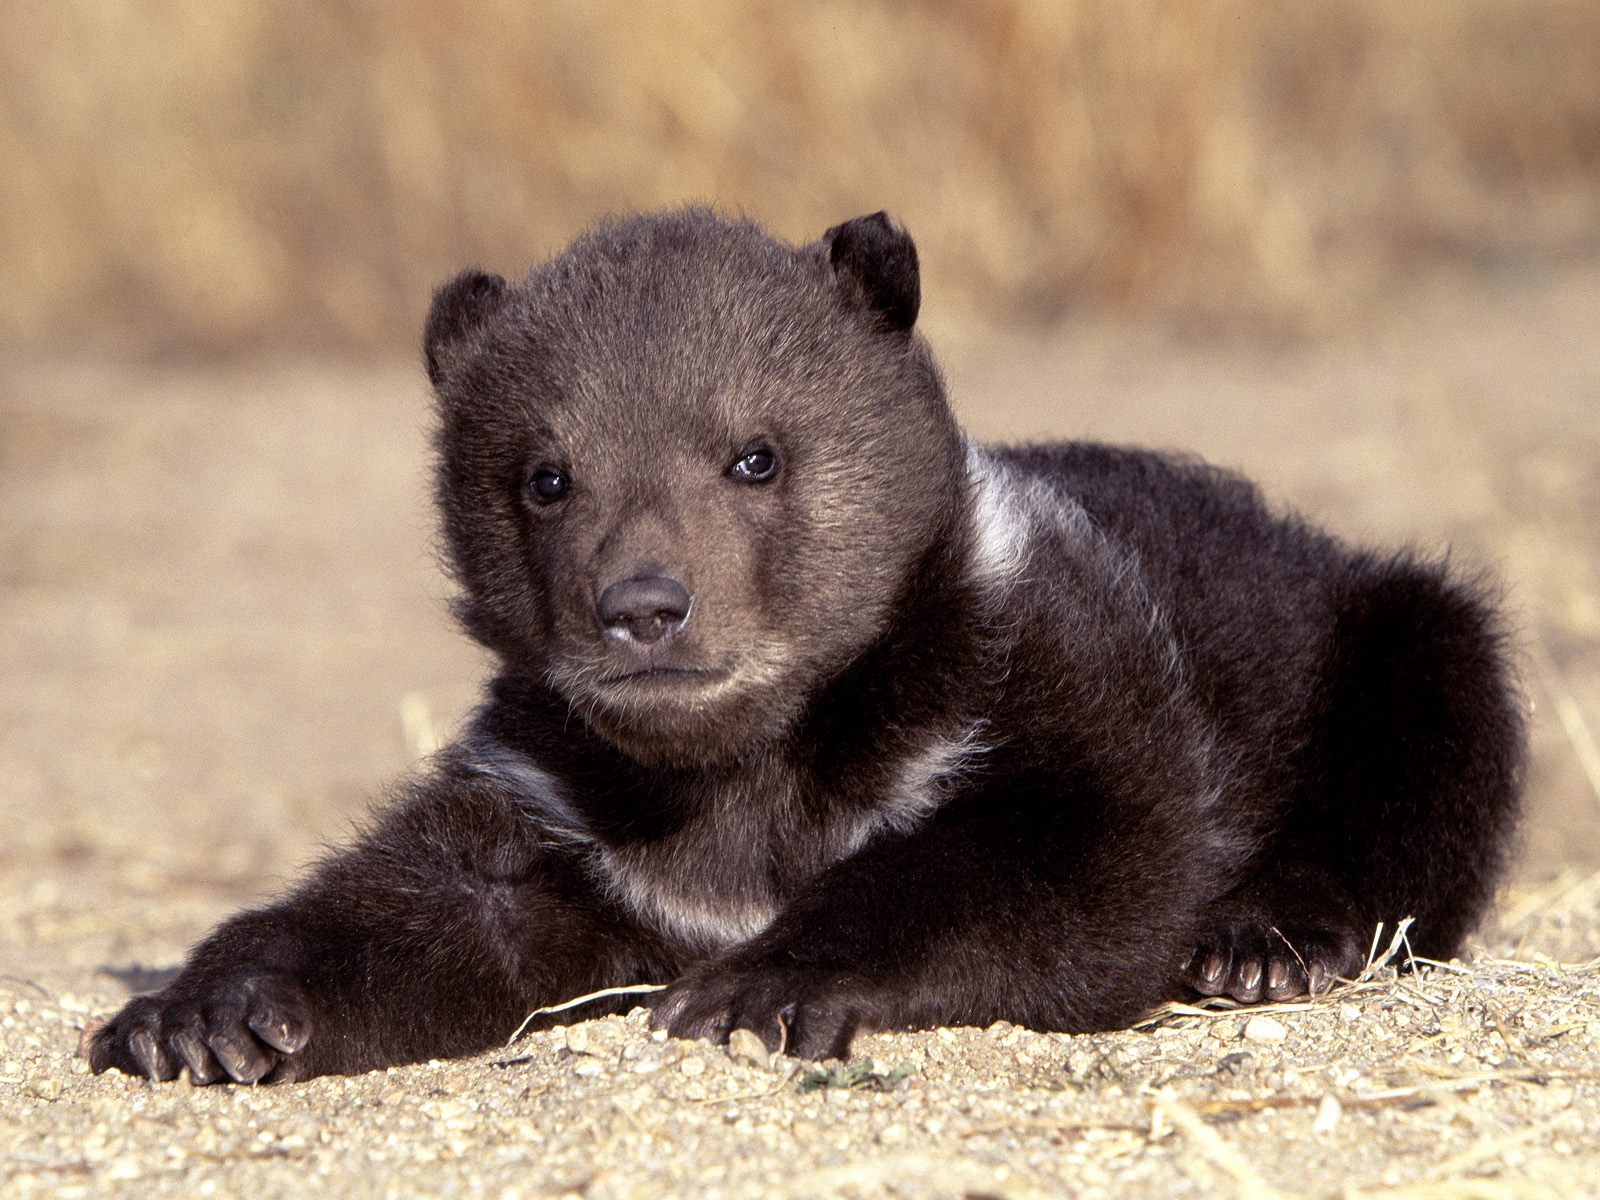 Baby Bear - About Animals